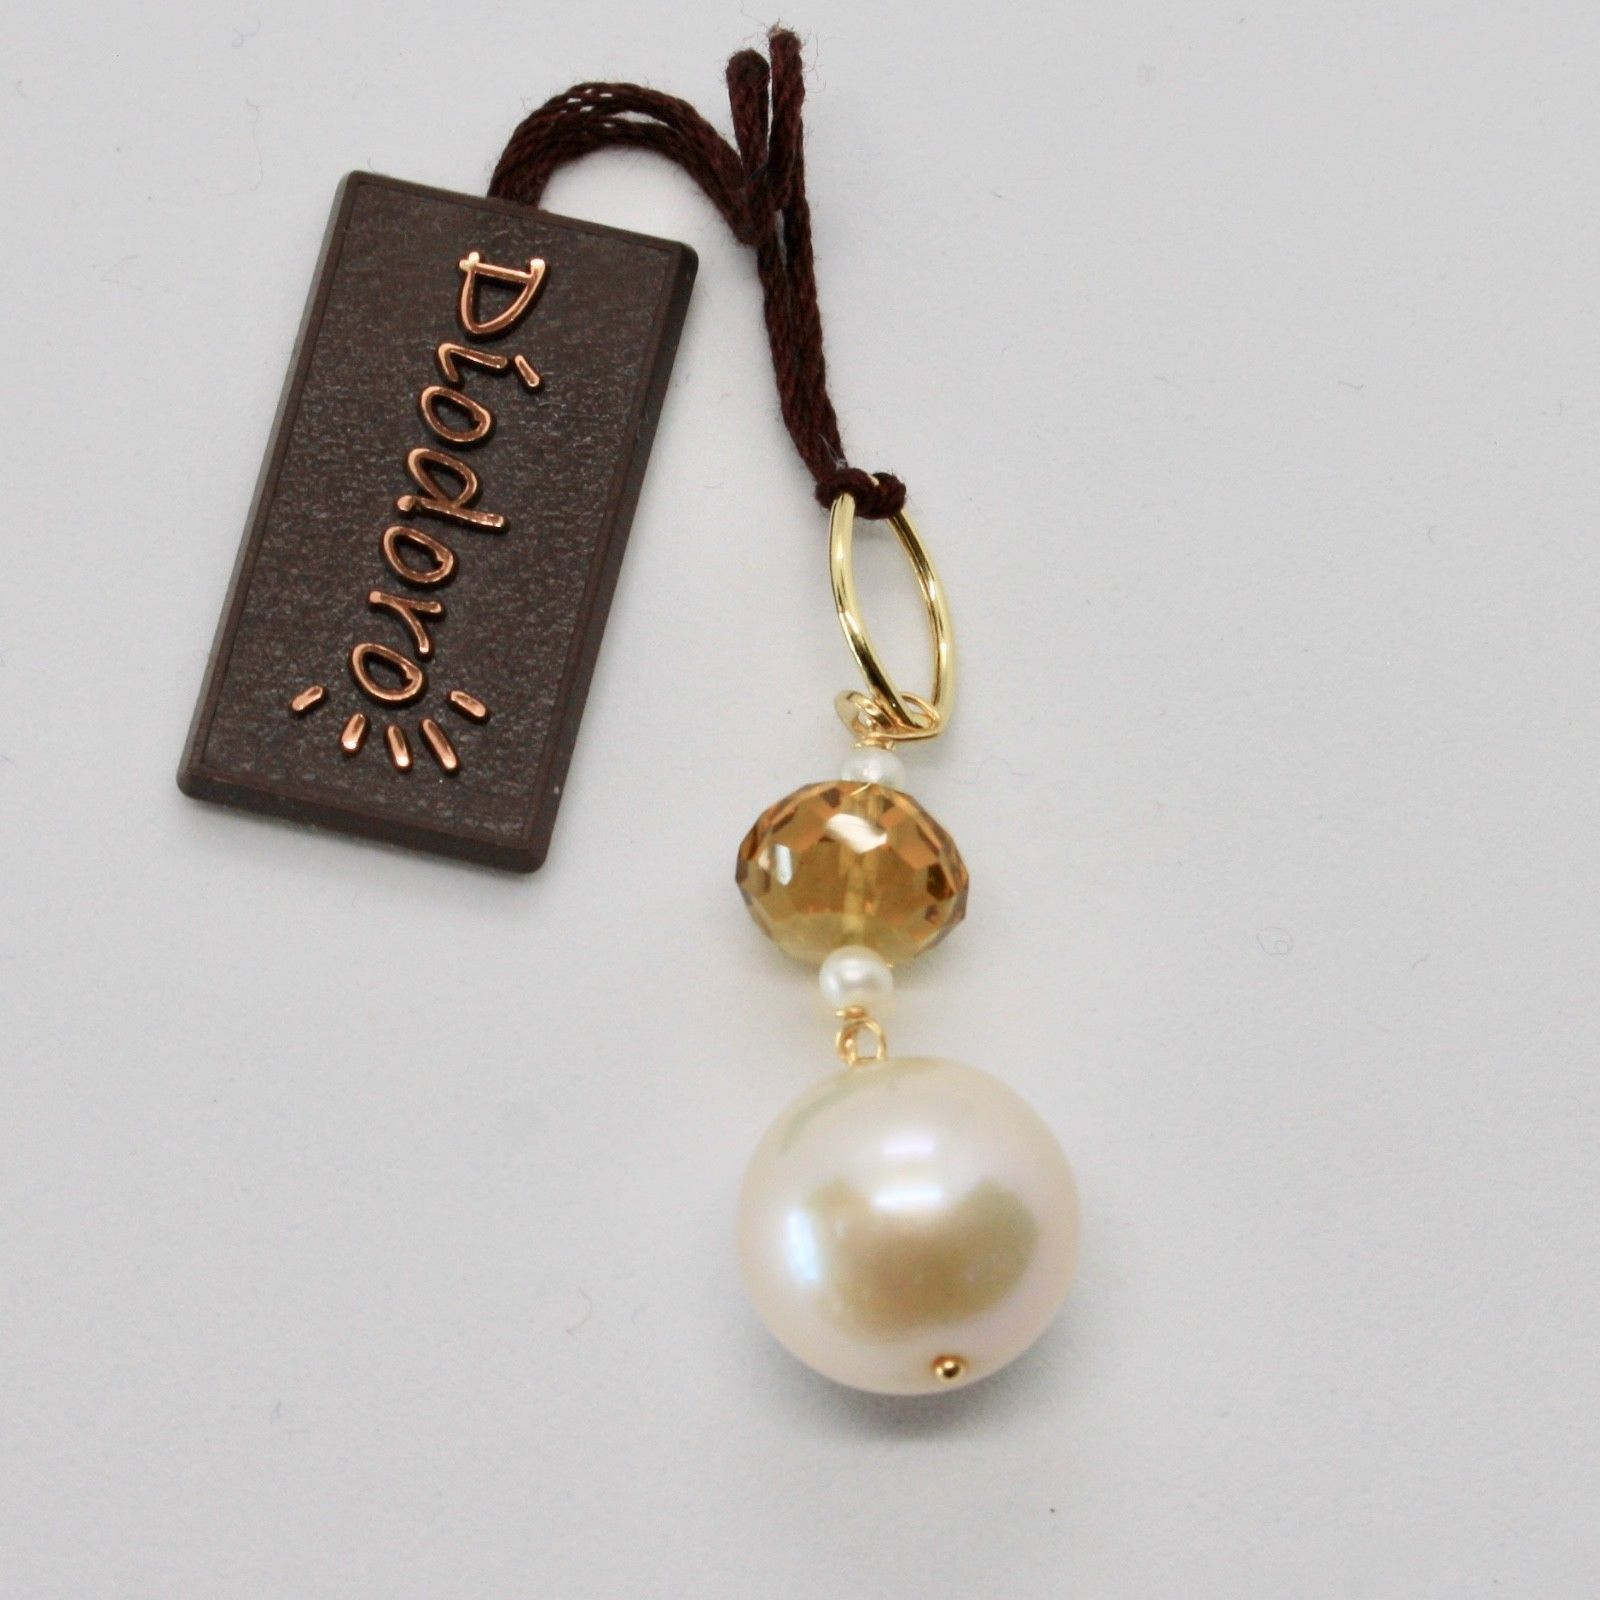 Charm 18k 750 Yellow Gold with White Pearl Freshwater and Quartz beer